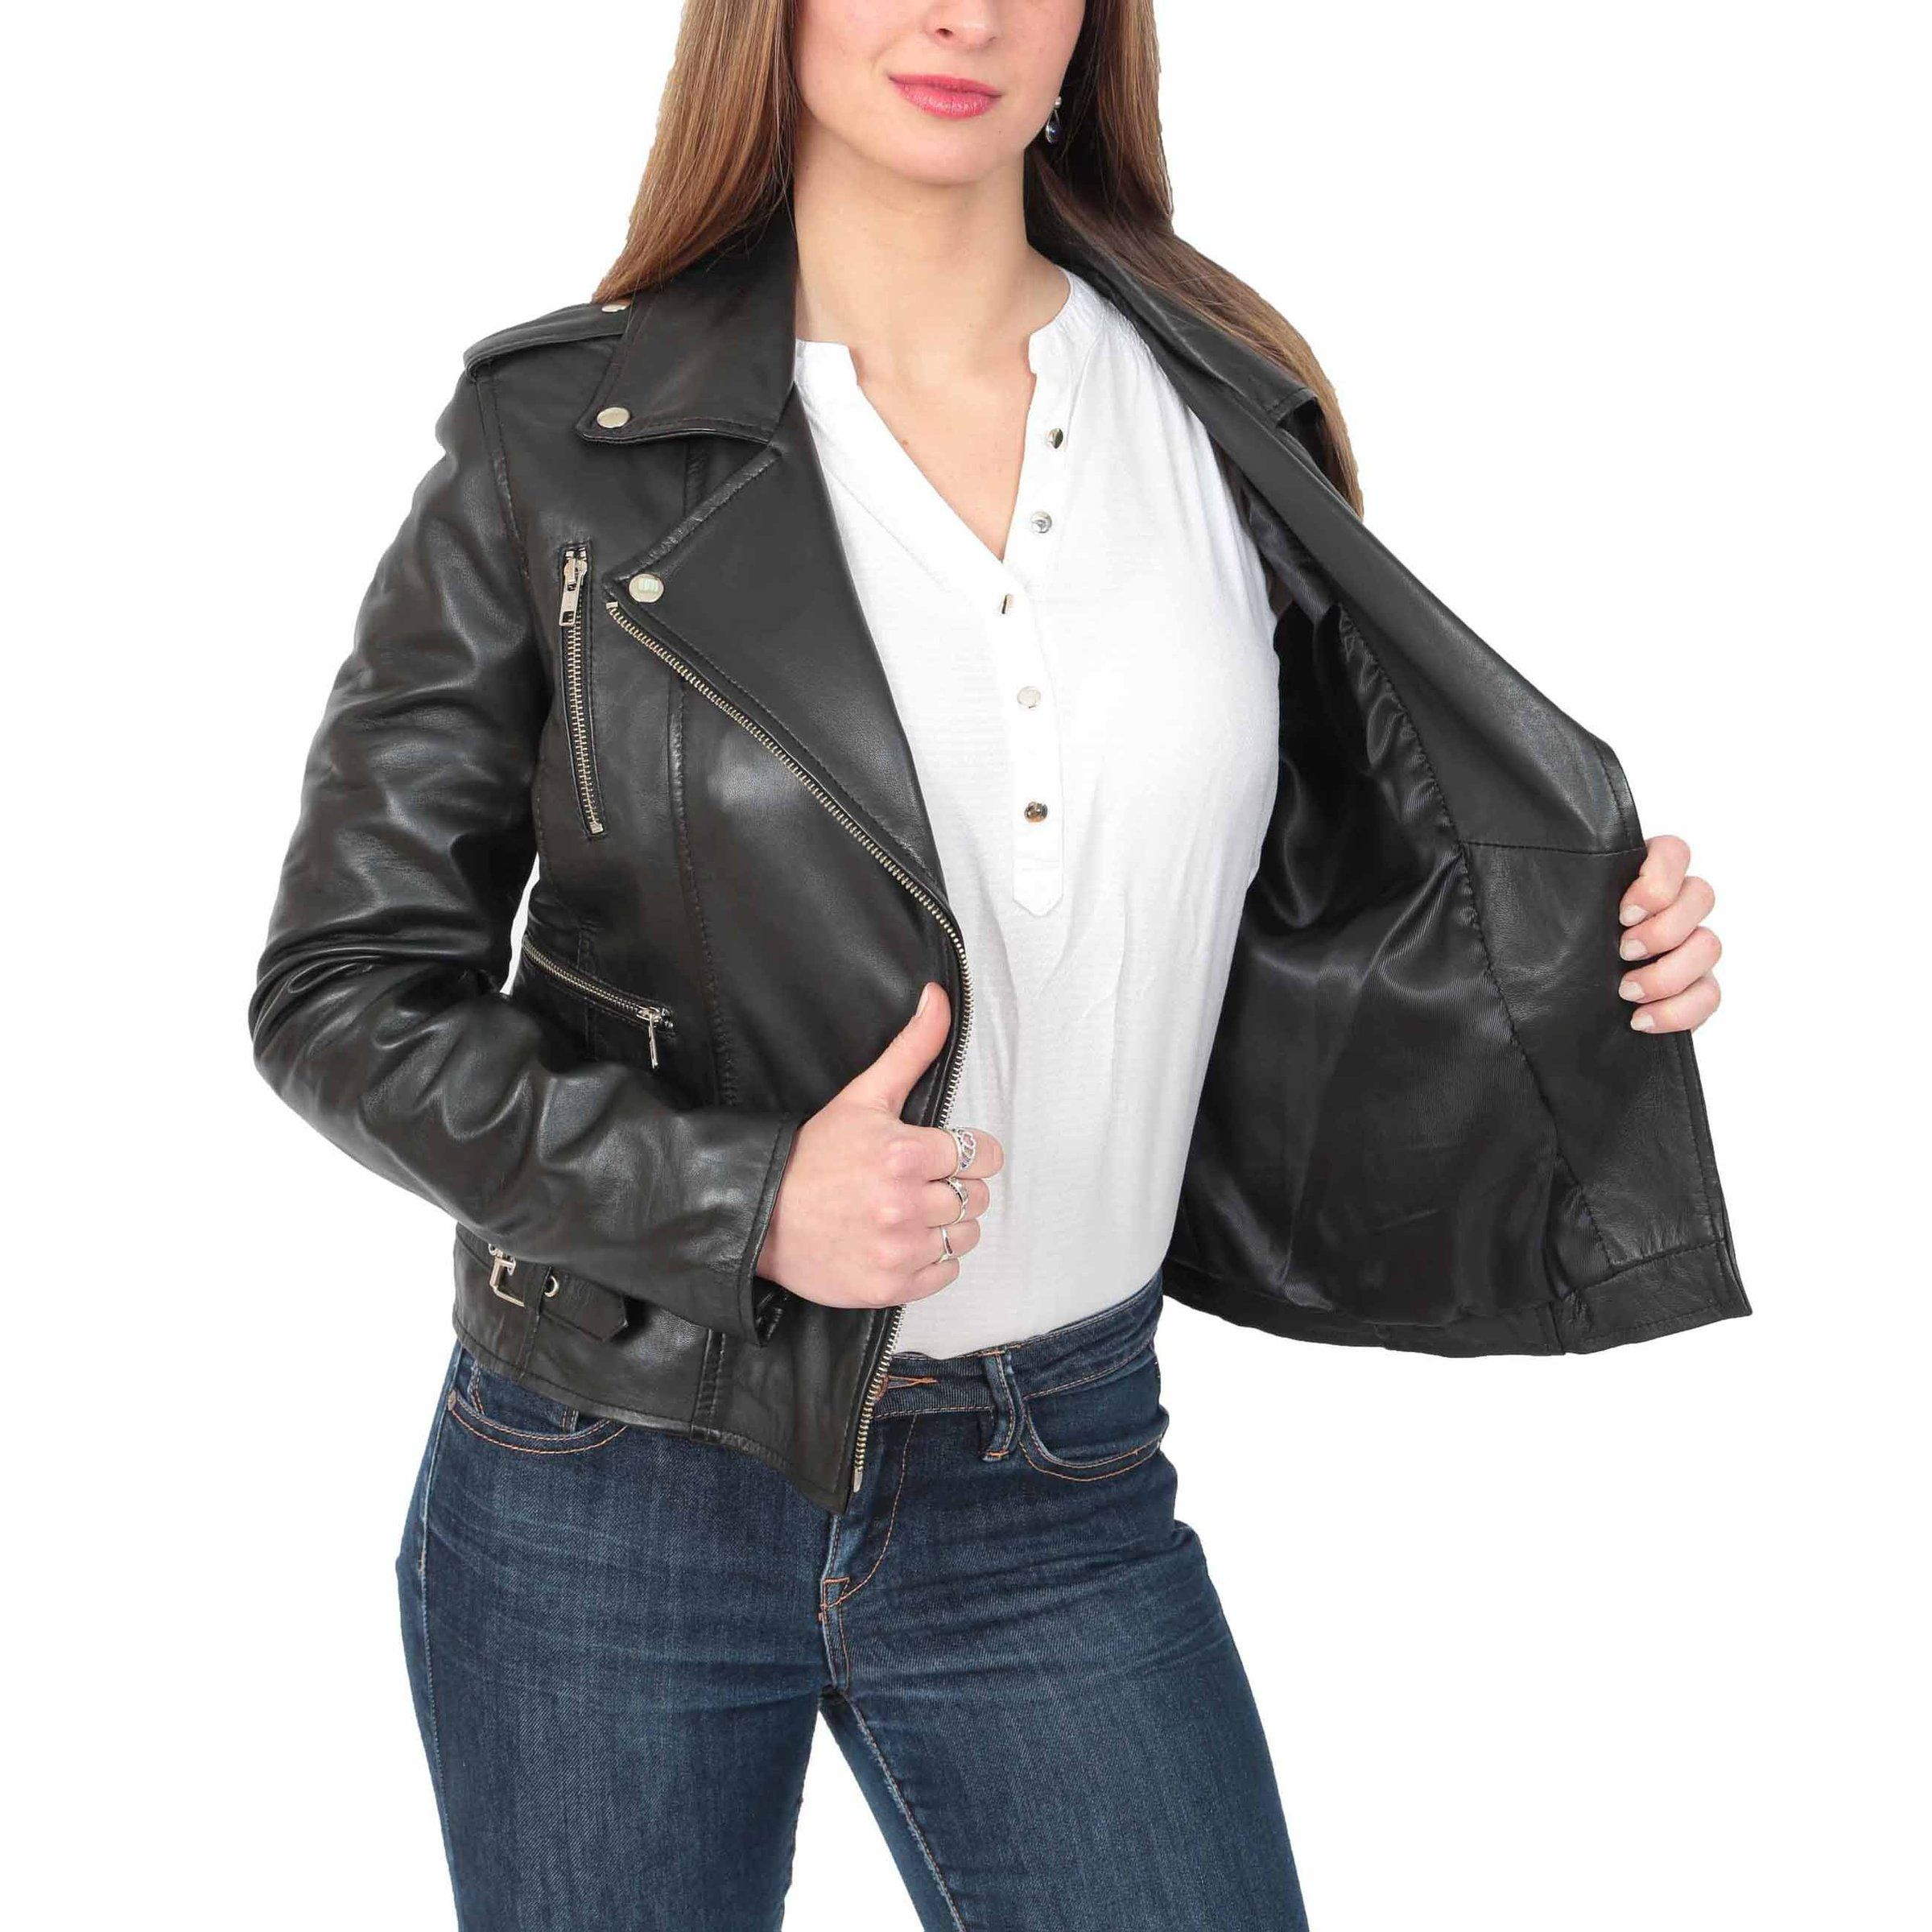 CelebsCostumes Womens Cross Zip Biker Leather Jacket